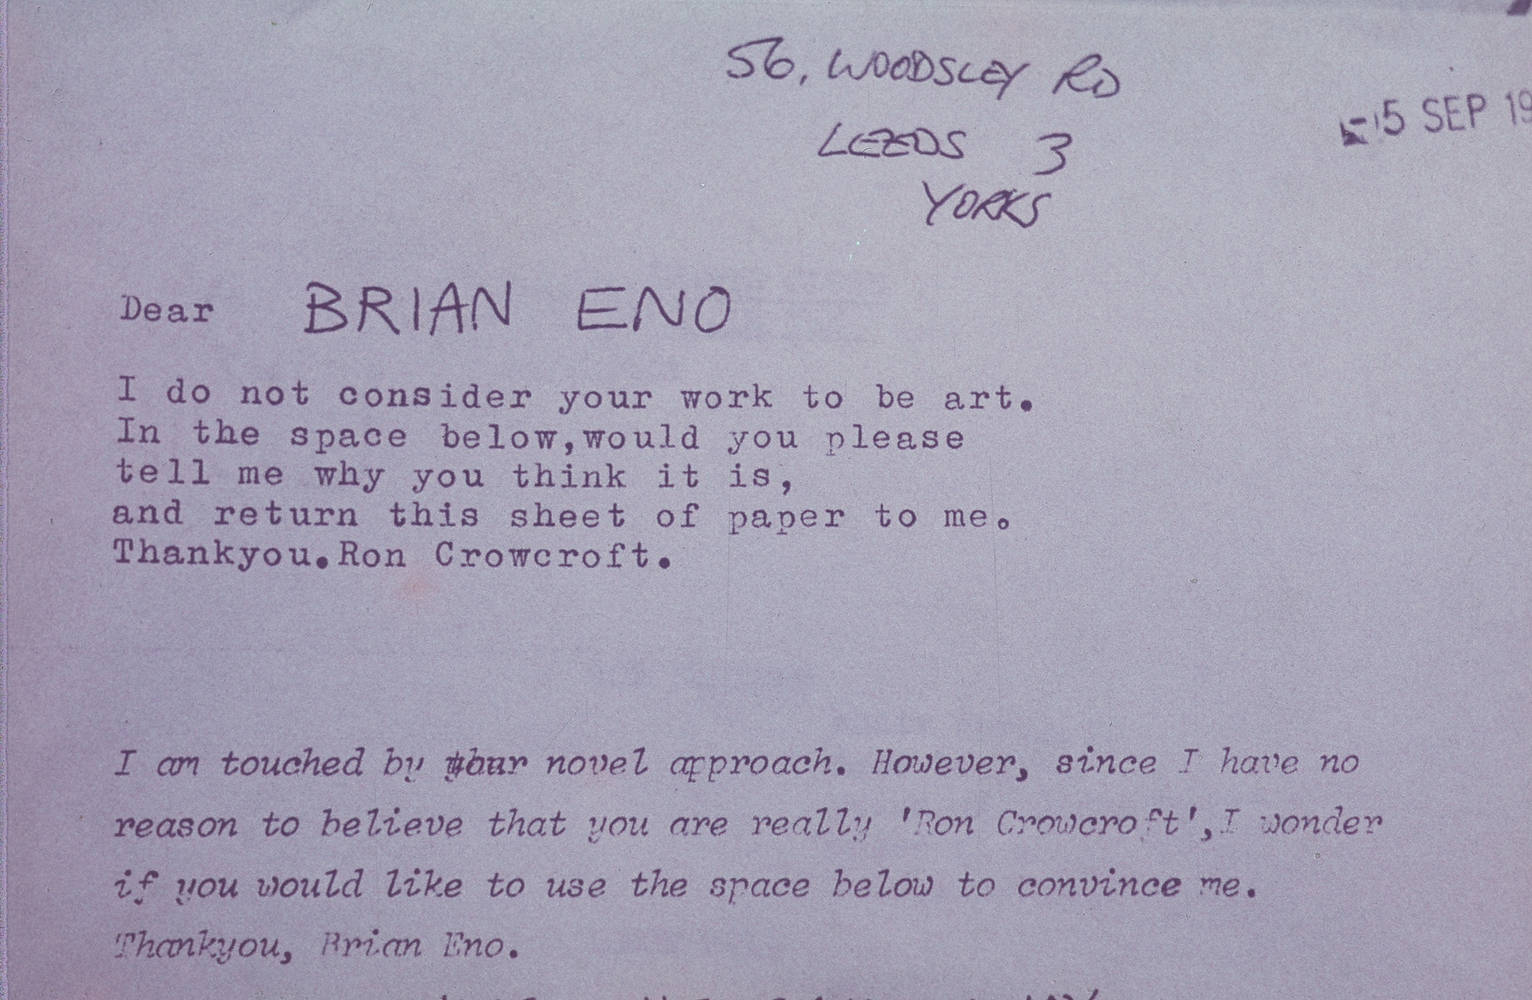 I do not consider your work to be art...Brian Eno response. by Ron Crowcroft